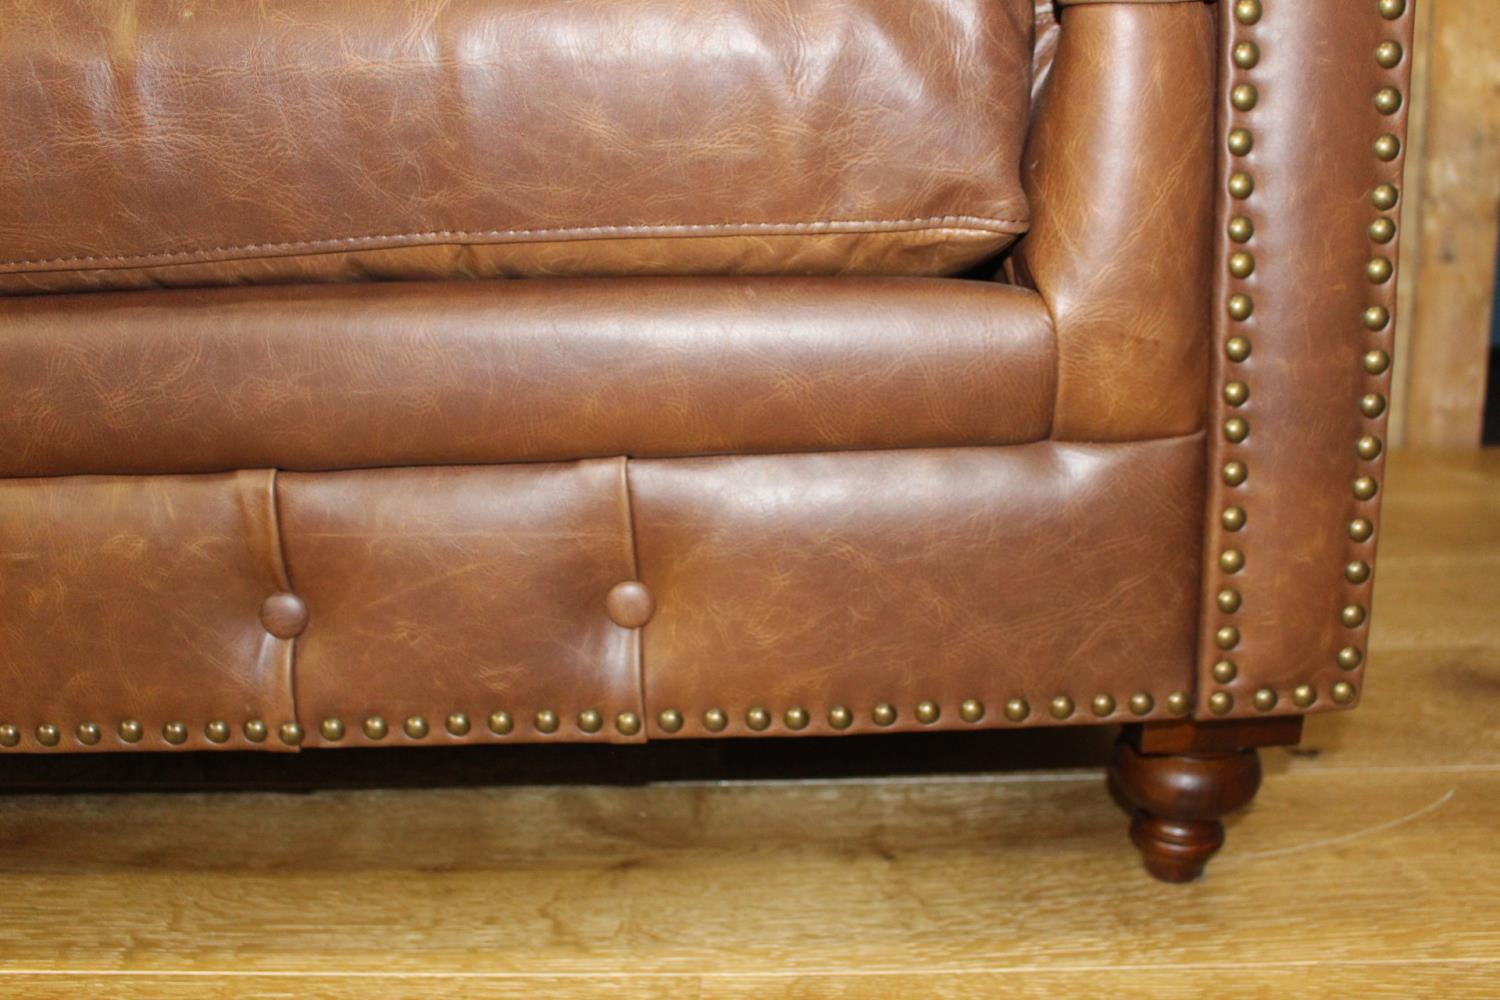 Four seated Chesterfield sofa. - Image 3 of 3